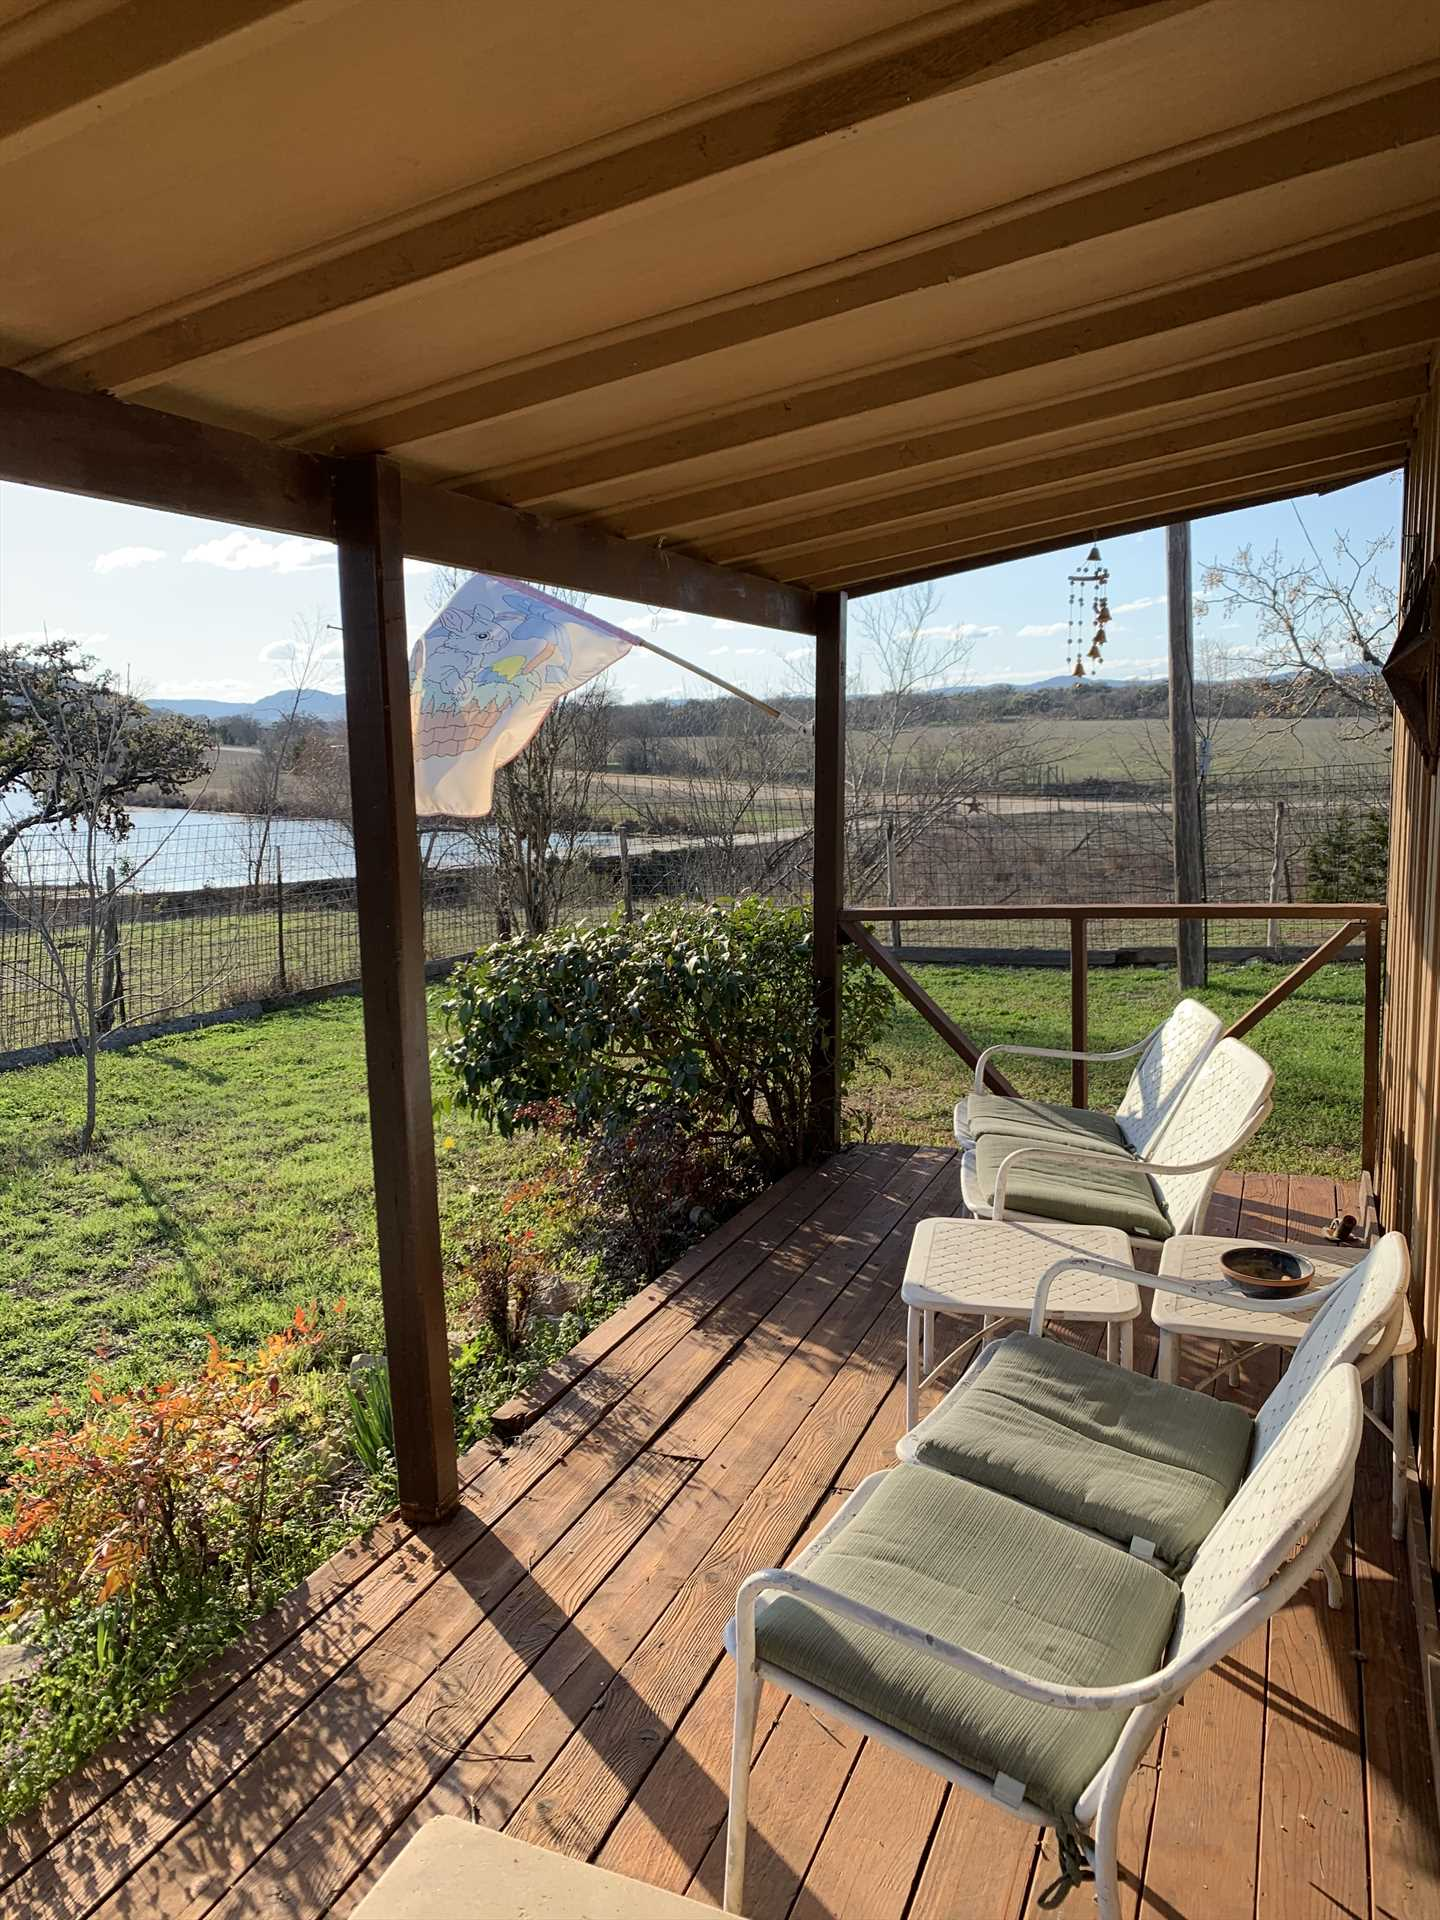 Shade falls on the front porch the hotter part of the day, so you can enjoy those amazing Hill Country views in comfort!